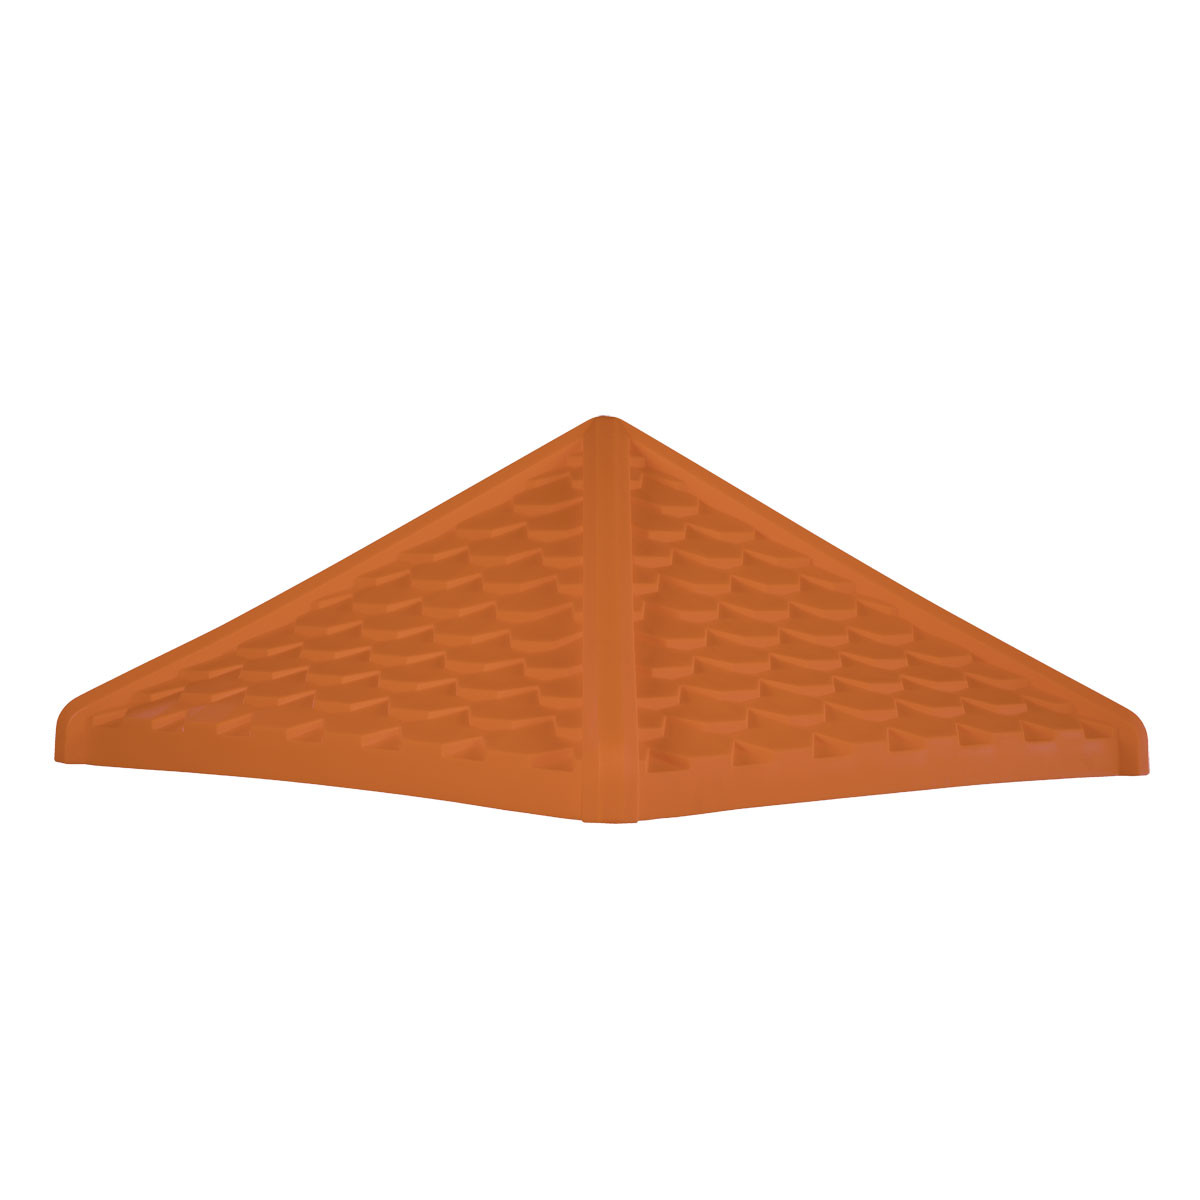 Shingled Pyramid Roof